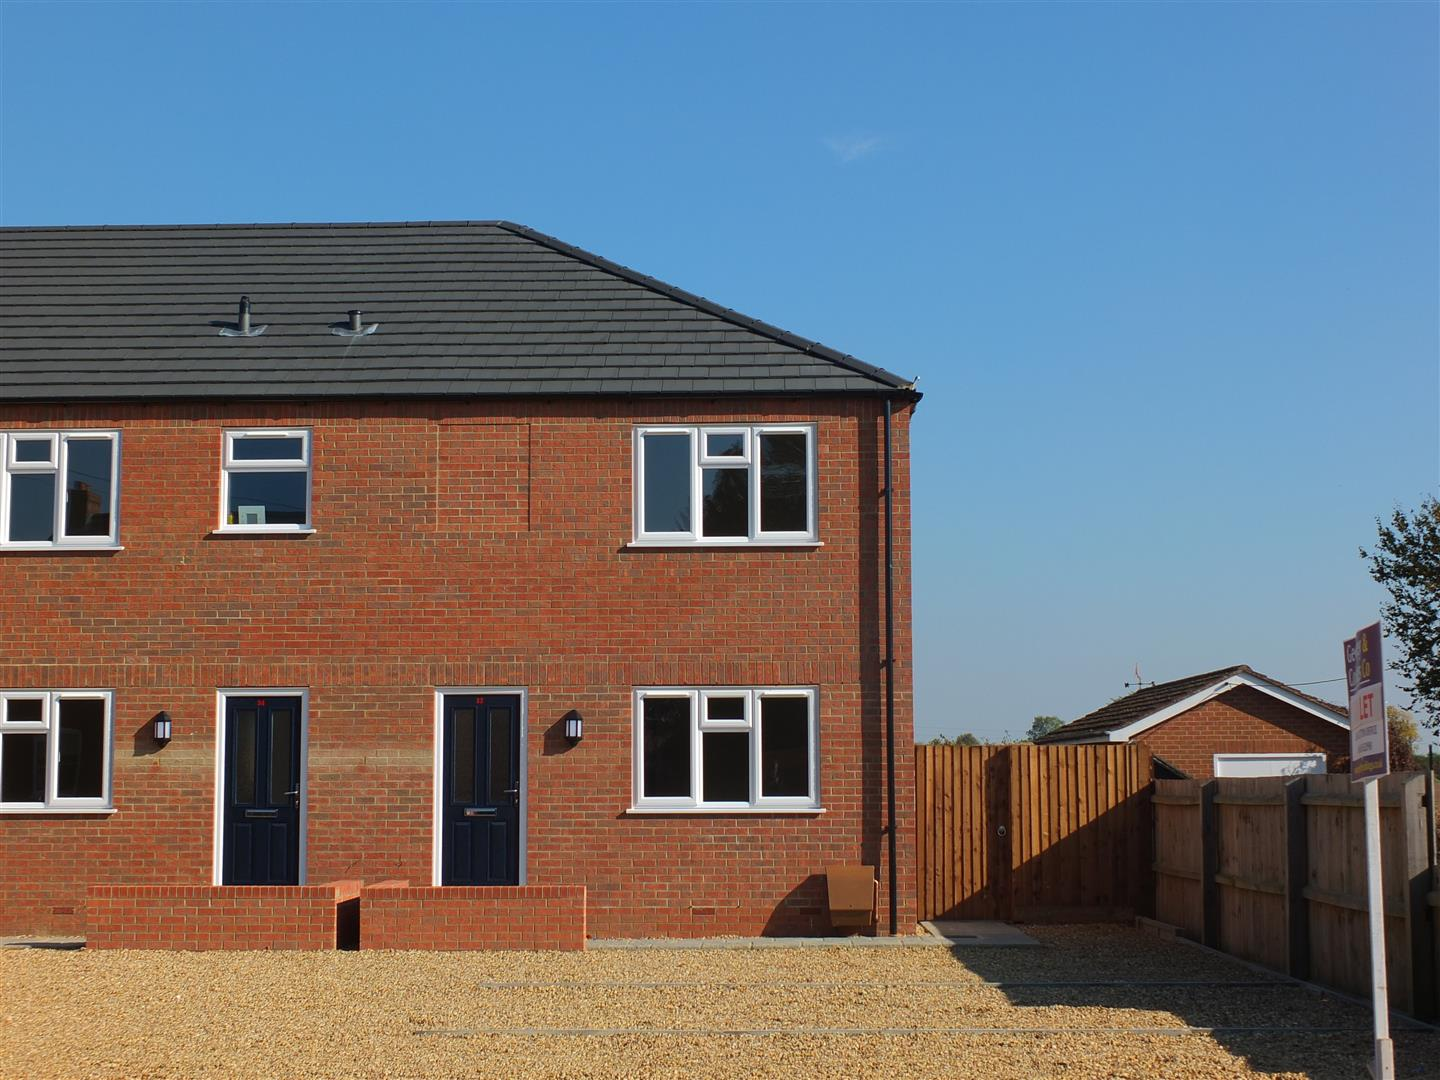 2 bed house to rent in Long Sutton Spalding, PE12 9LE, PE12